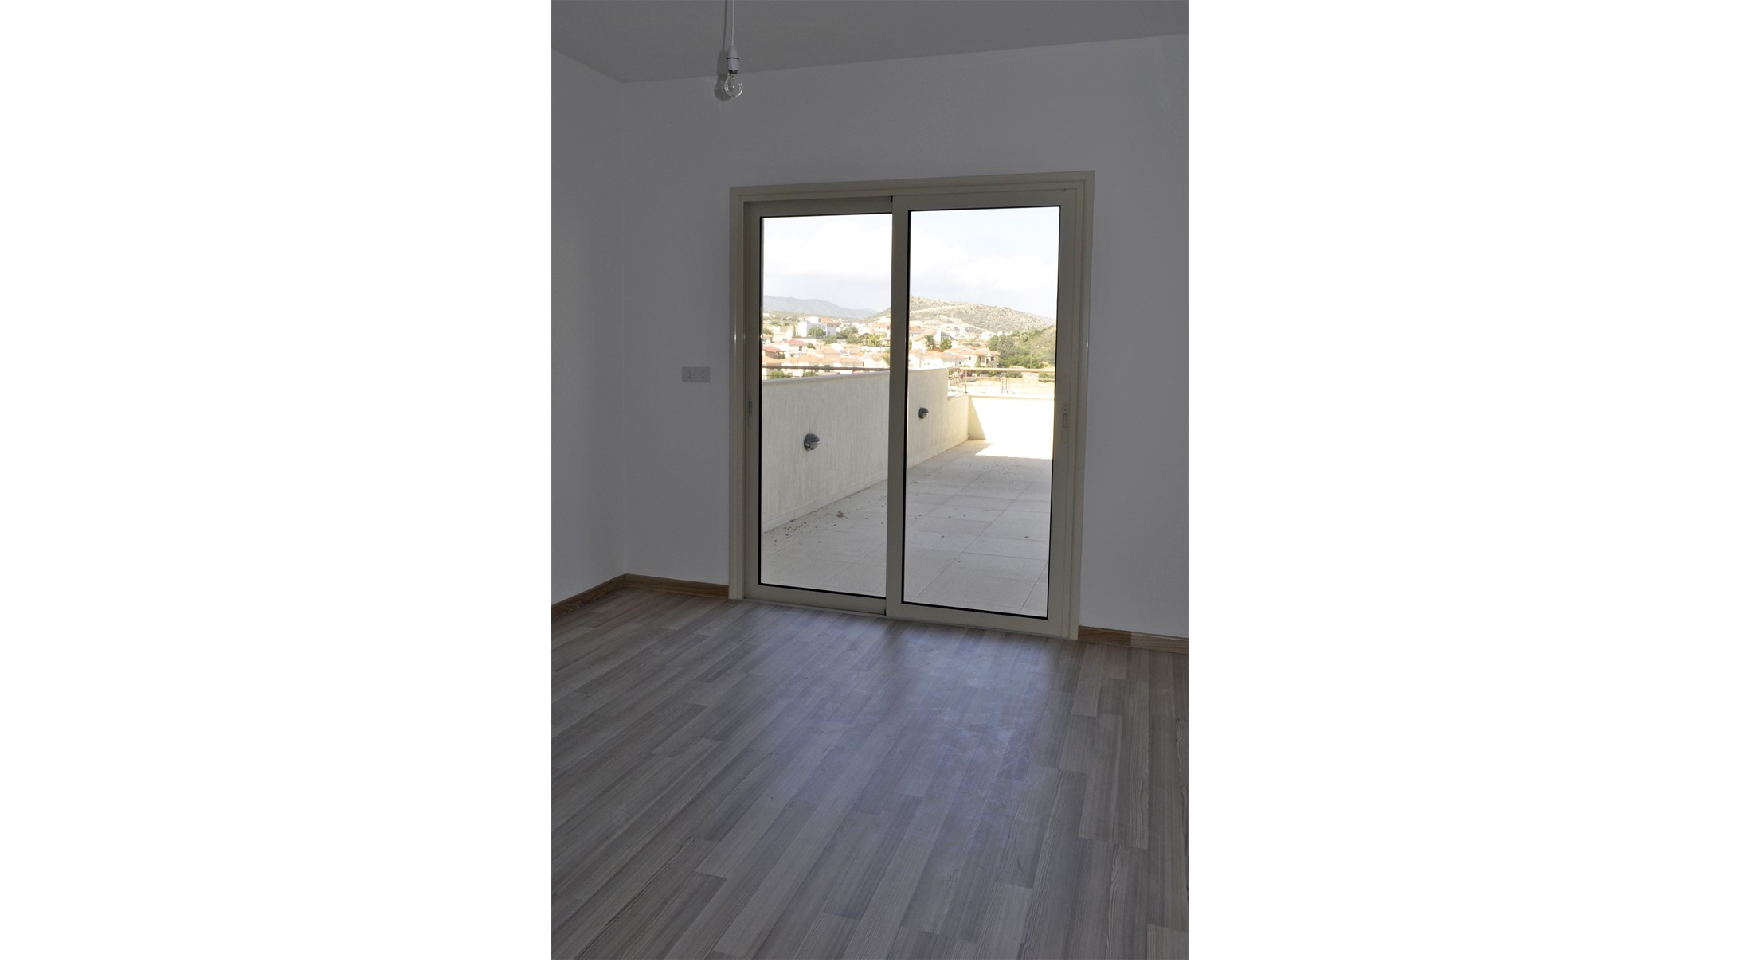 2 Bedroom Apartment with Amazing Views in Agios Athanasios - 14